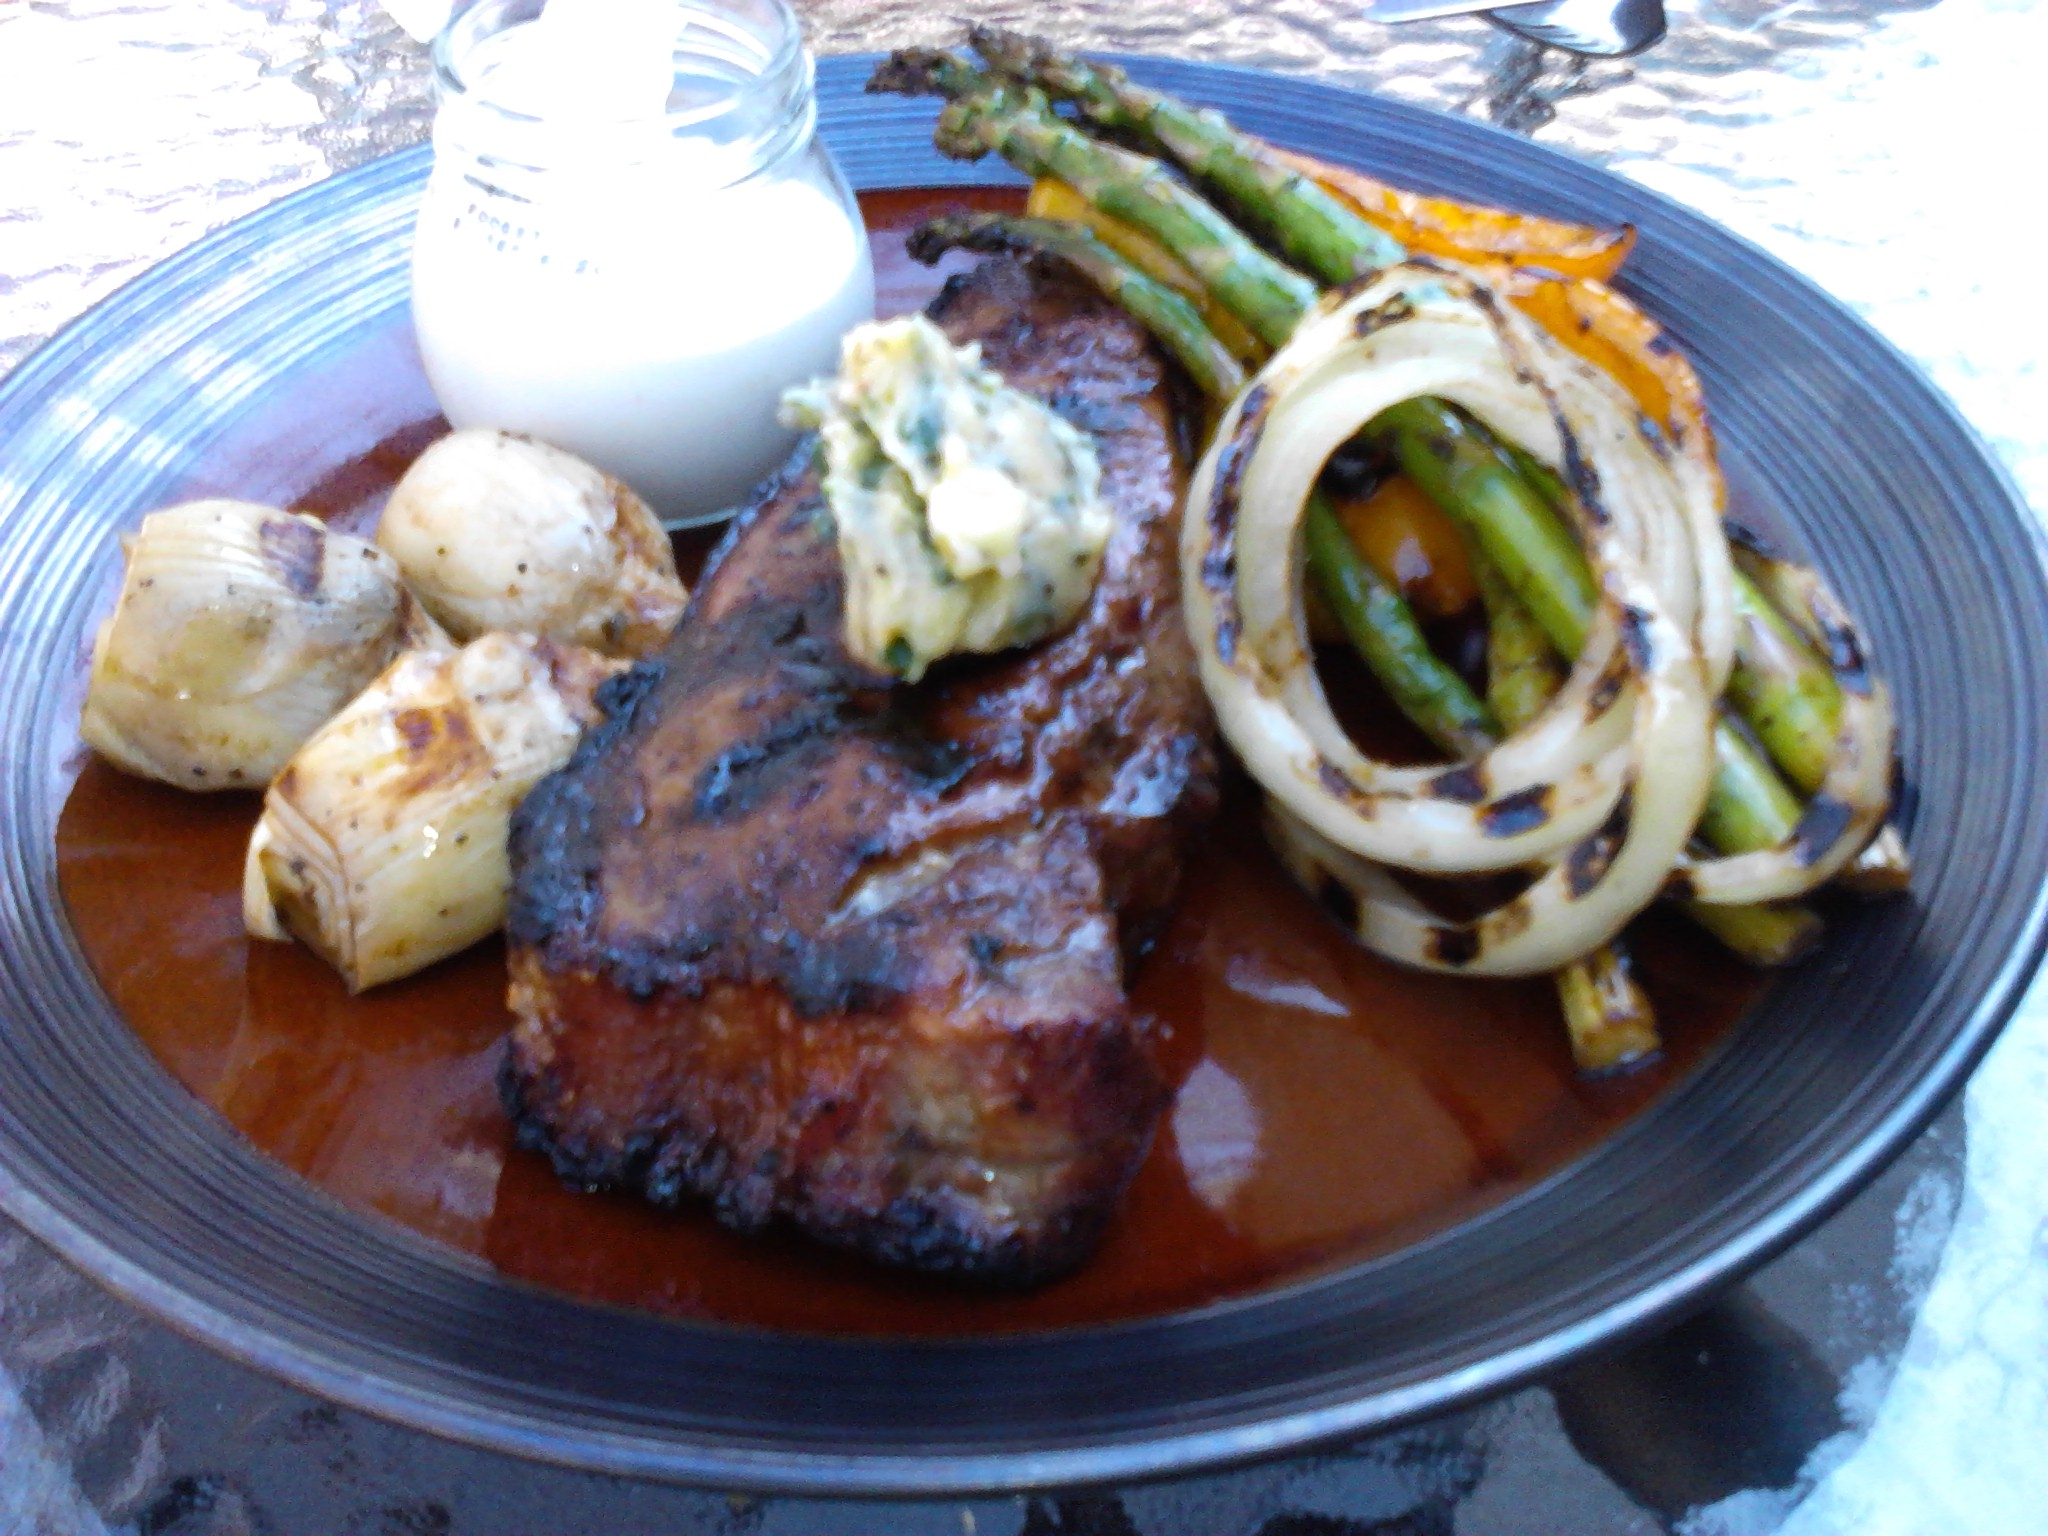 Grilled Steak with Grilled Veggies